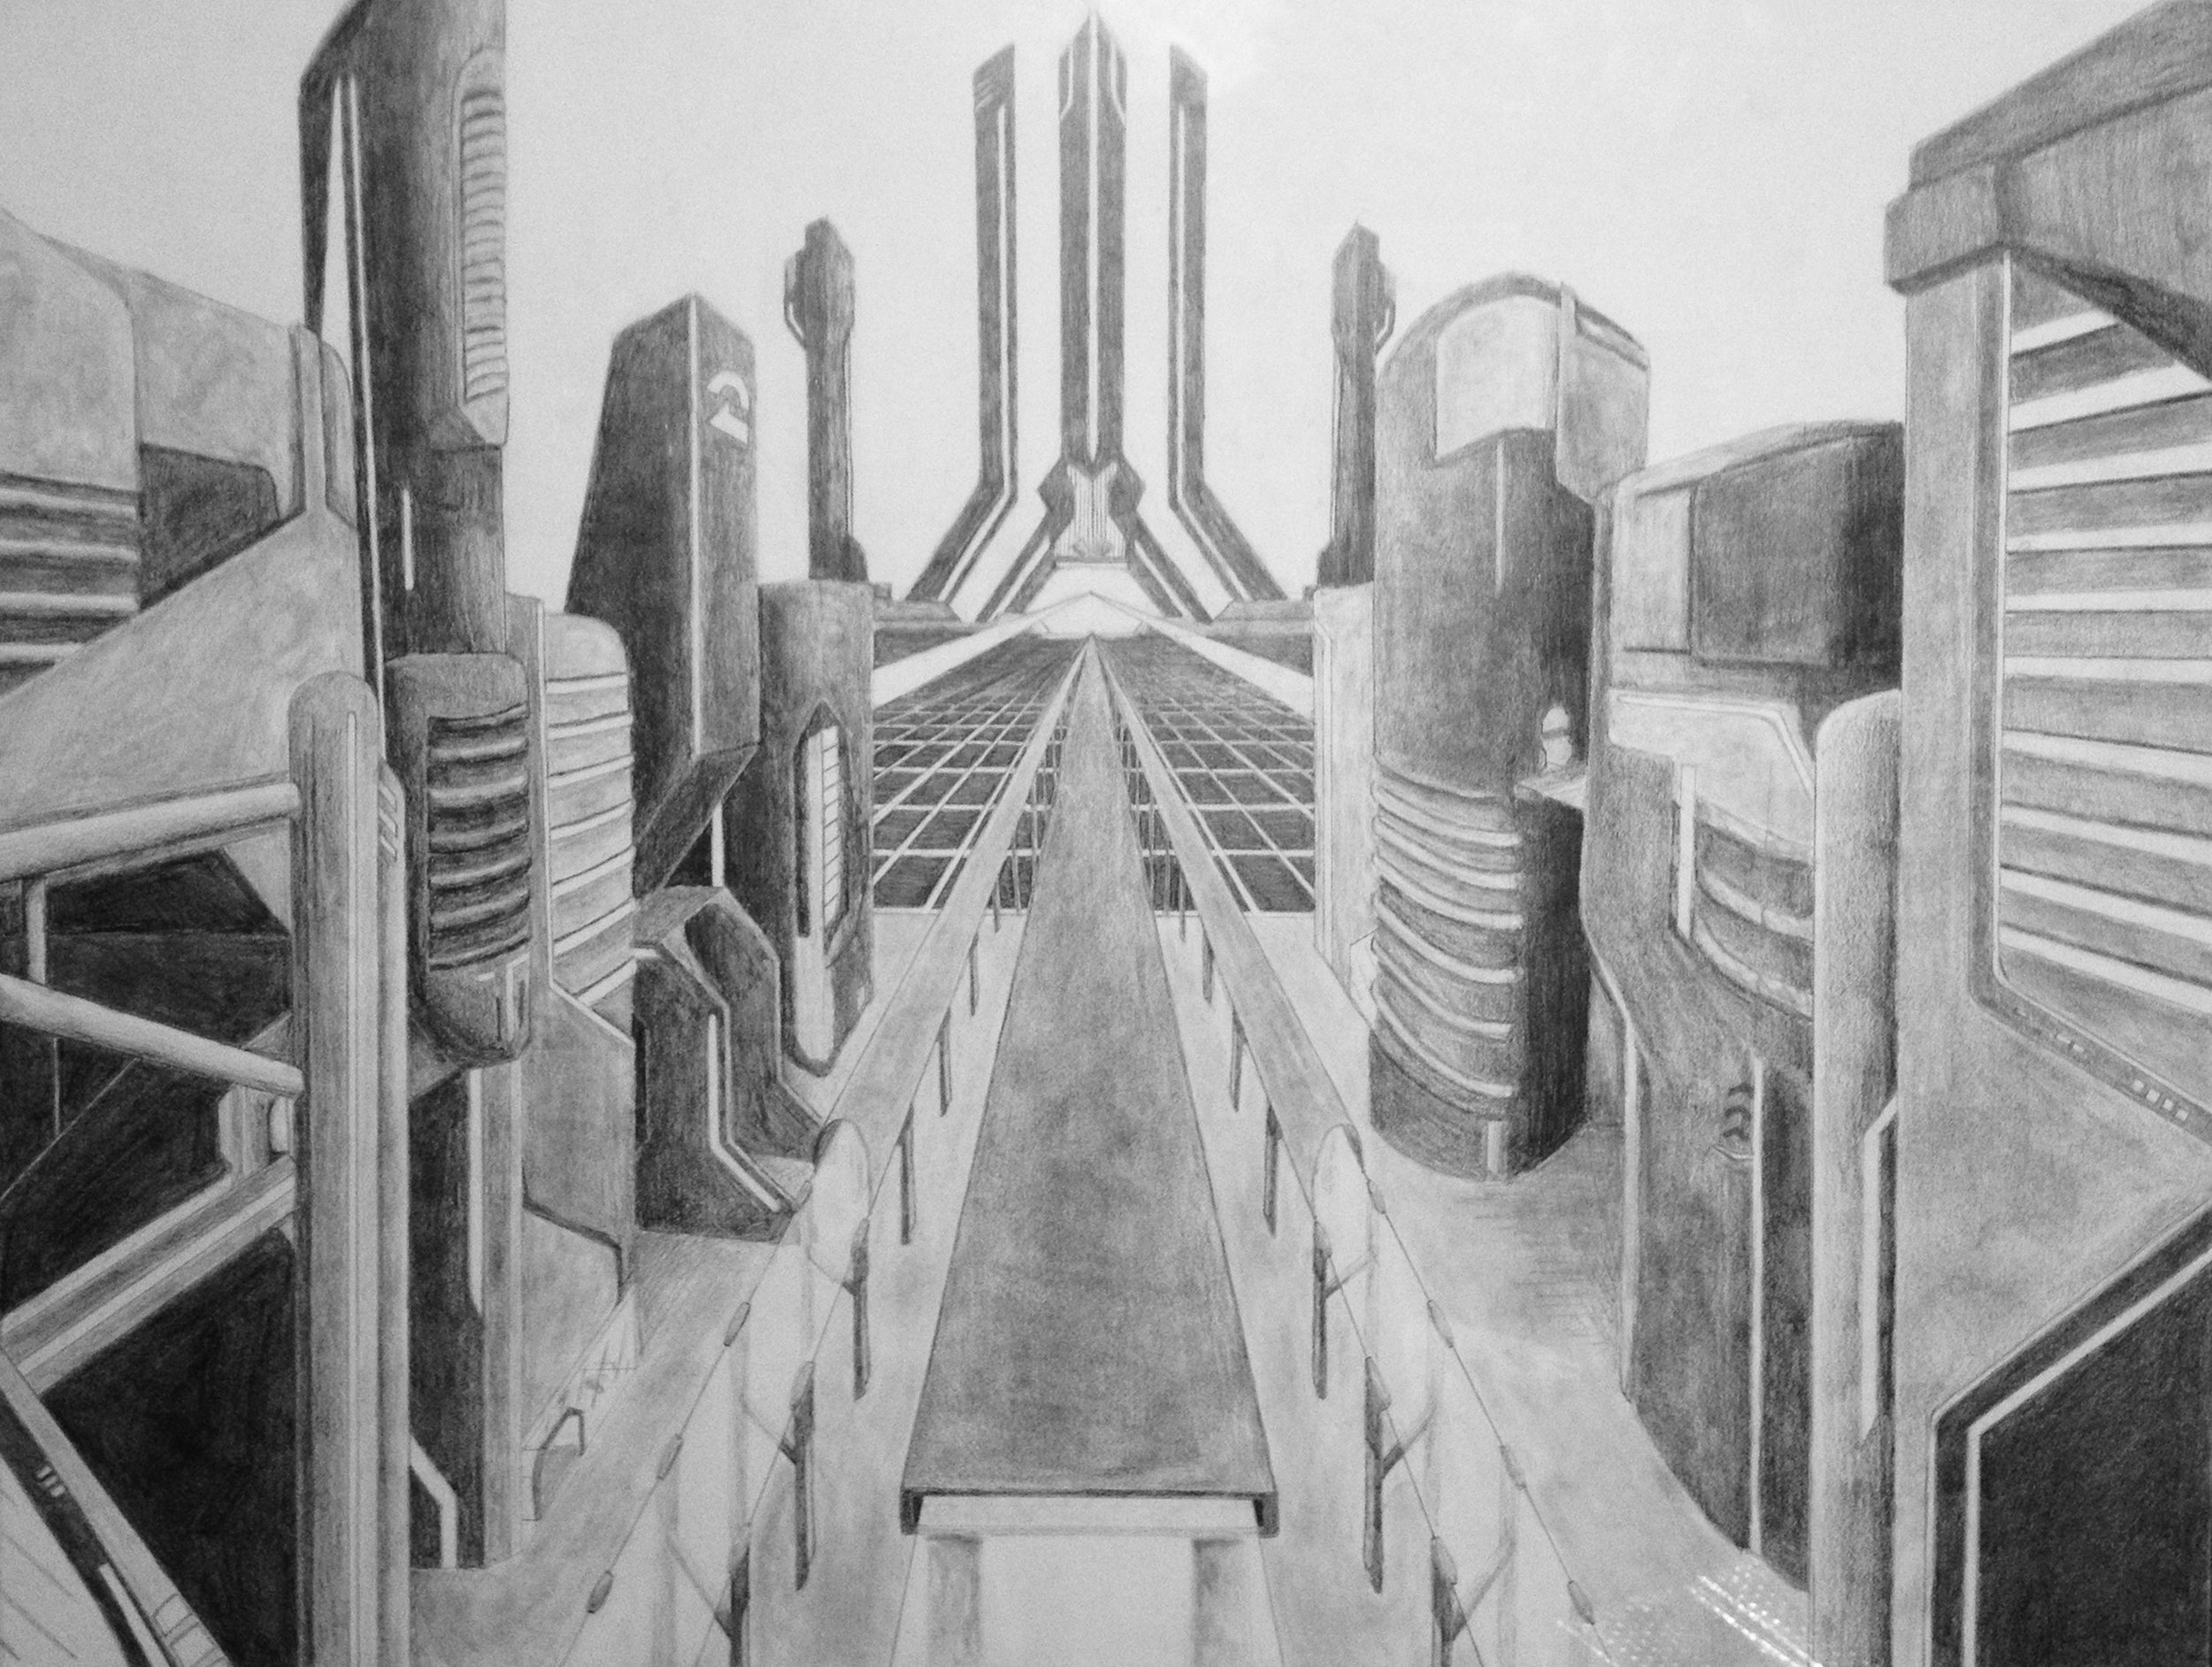 """Cyber-city""  Pencil on paper 36x24"" October 2013"